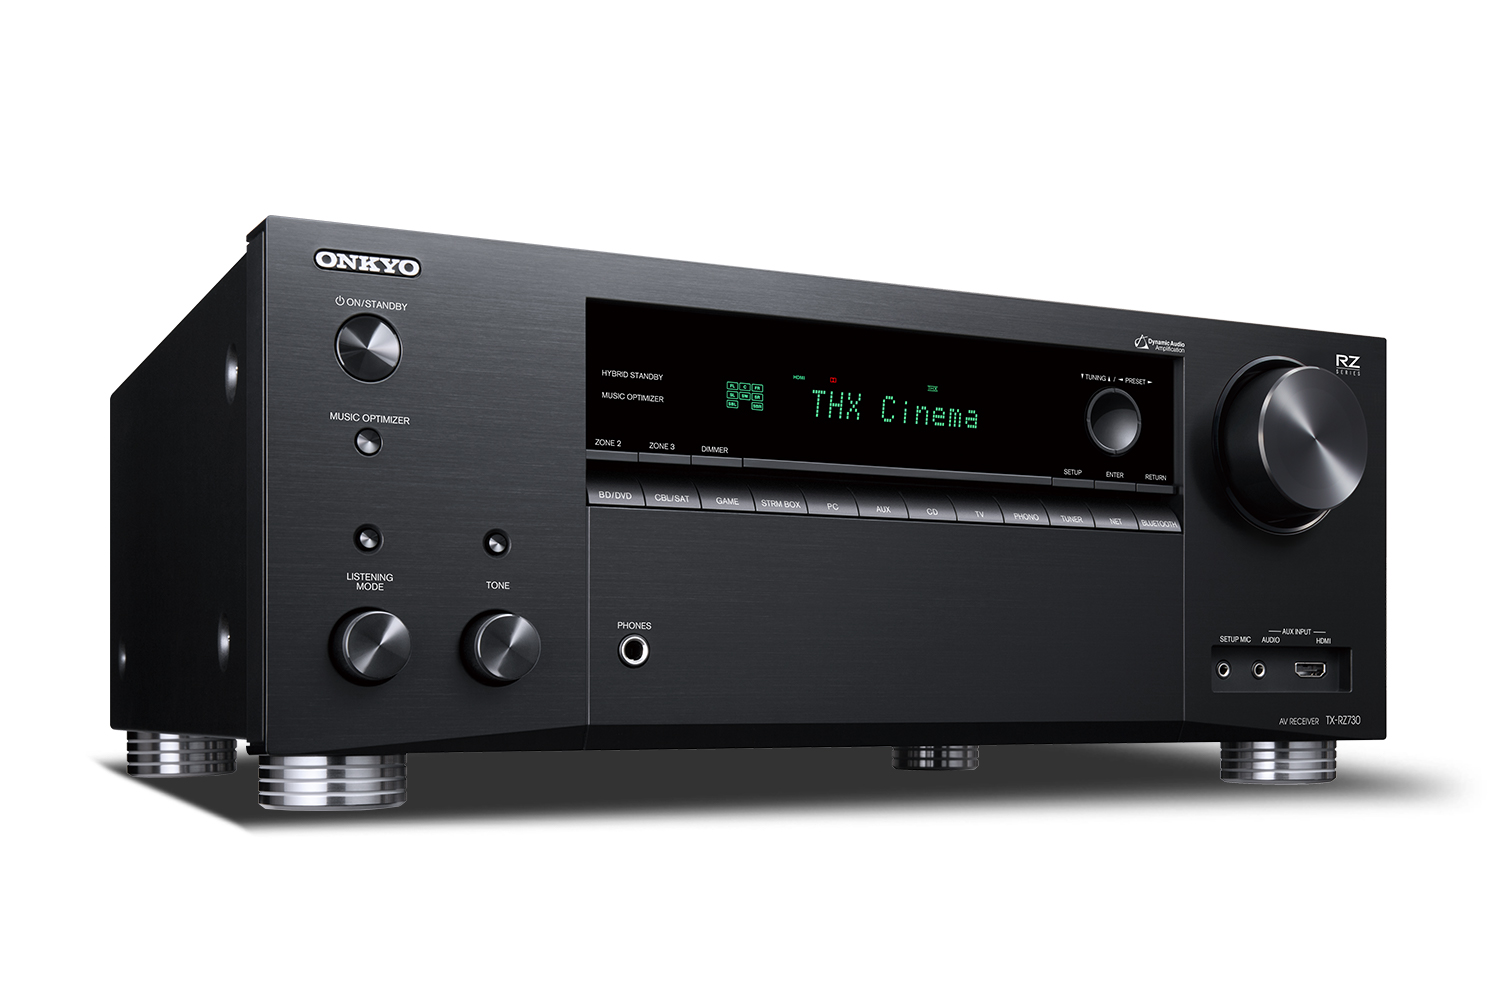 Image for Onkyo TX-RZ730 9.2-Channel Network A/V Receiver